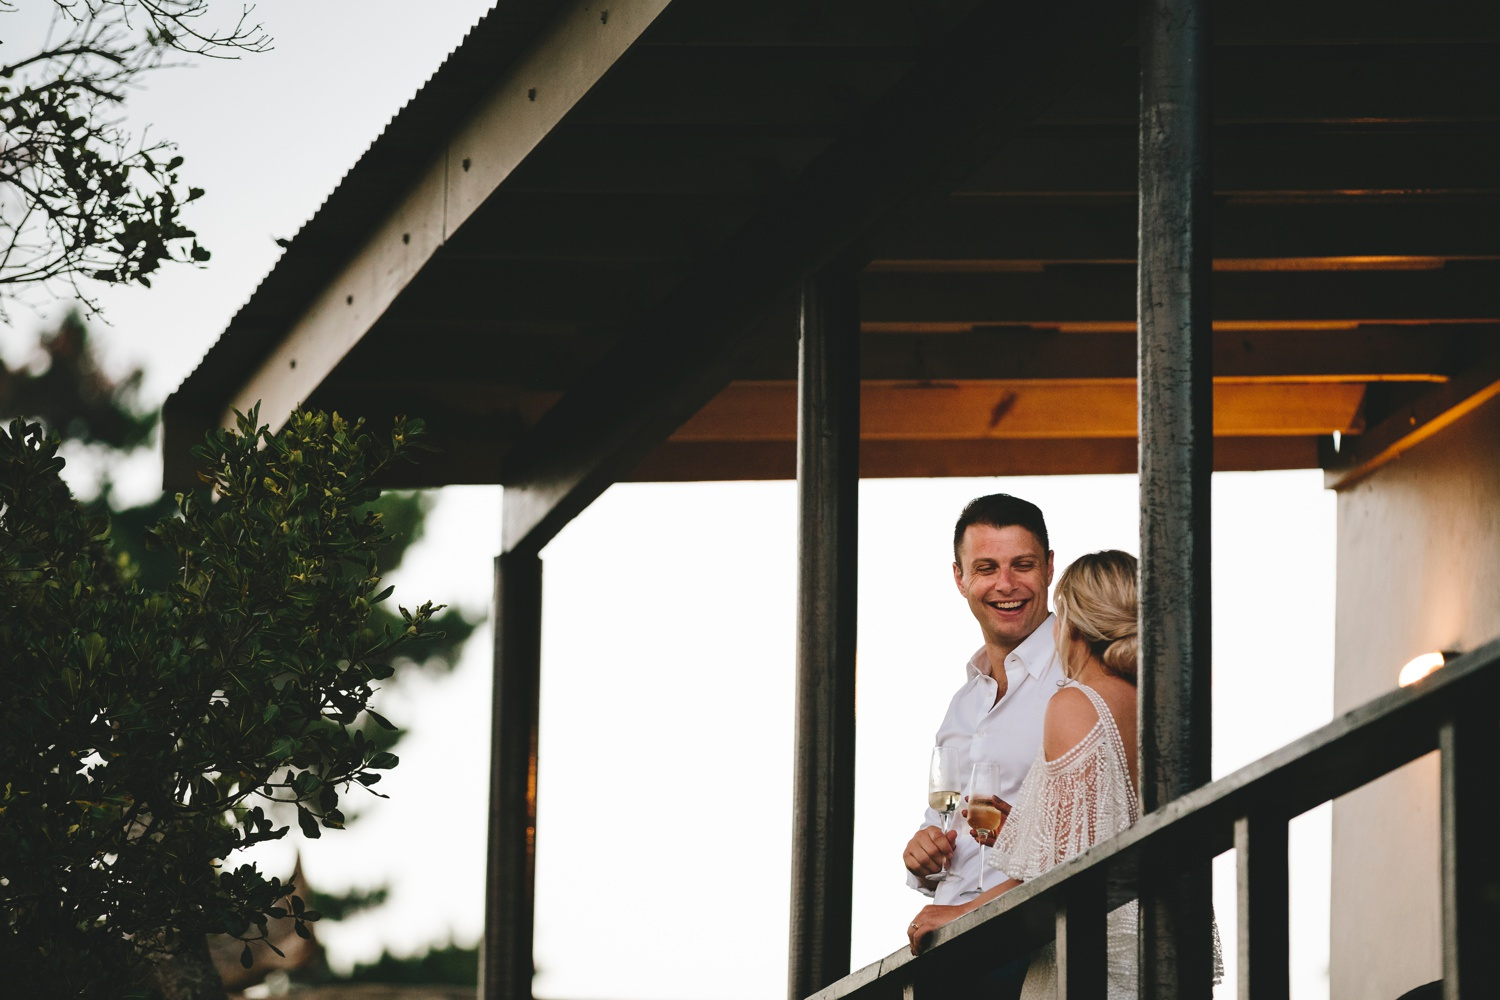 charlie_ray_photography_runaway_romance_elopement_emily_moon_plett_simple_boho_wedding_south_africa_bohemium_0119.jpg